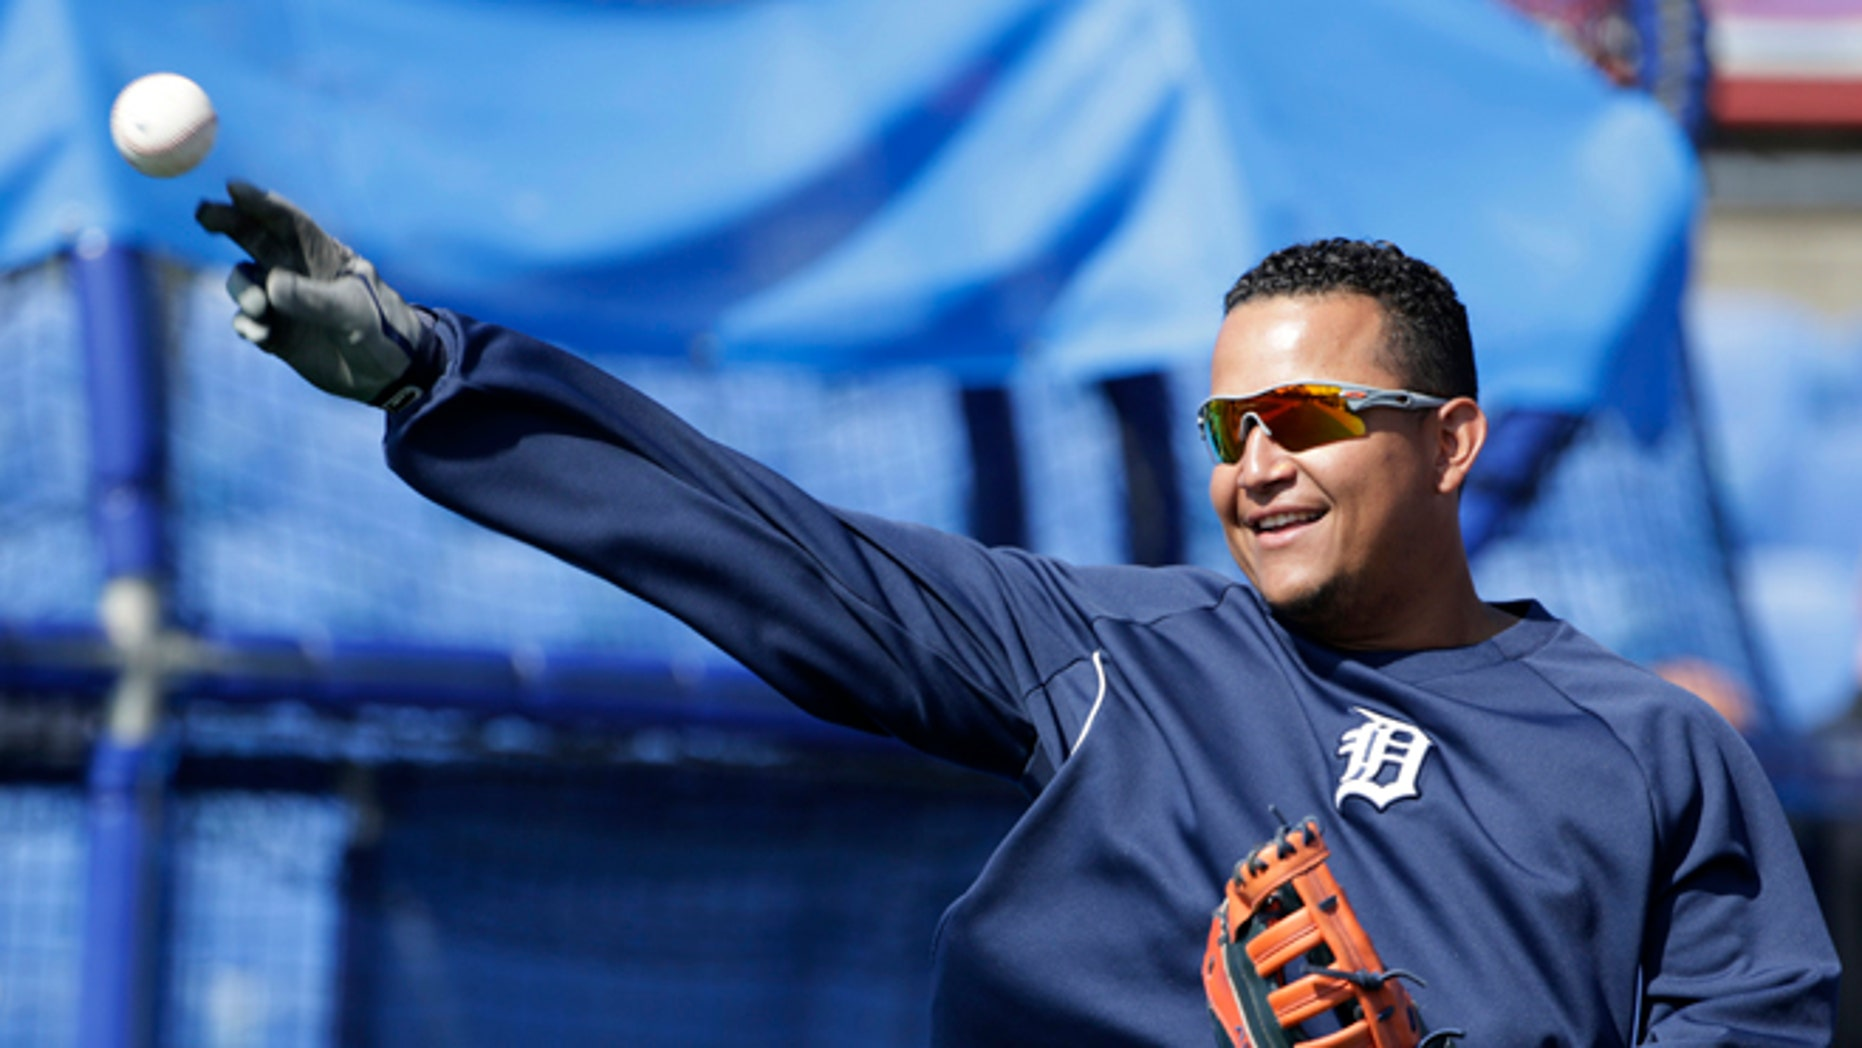 Miguel Cabrera plays catch before batting practice during spring training.